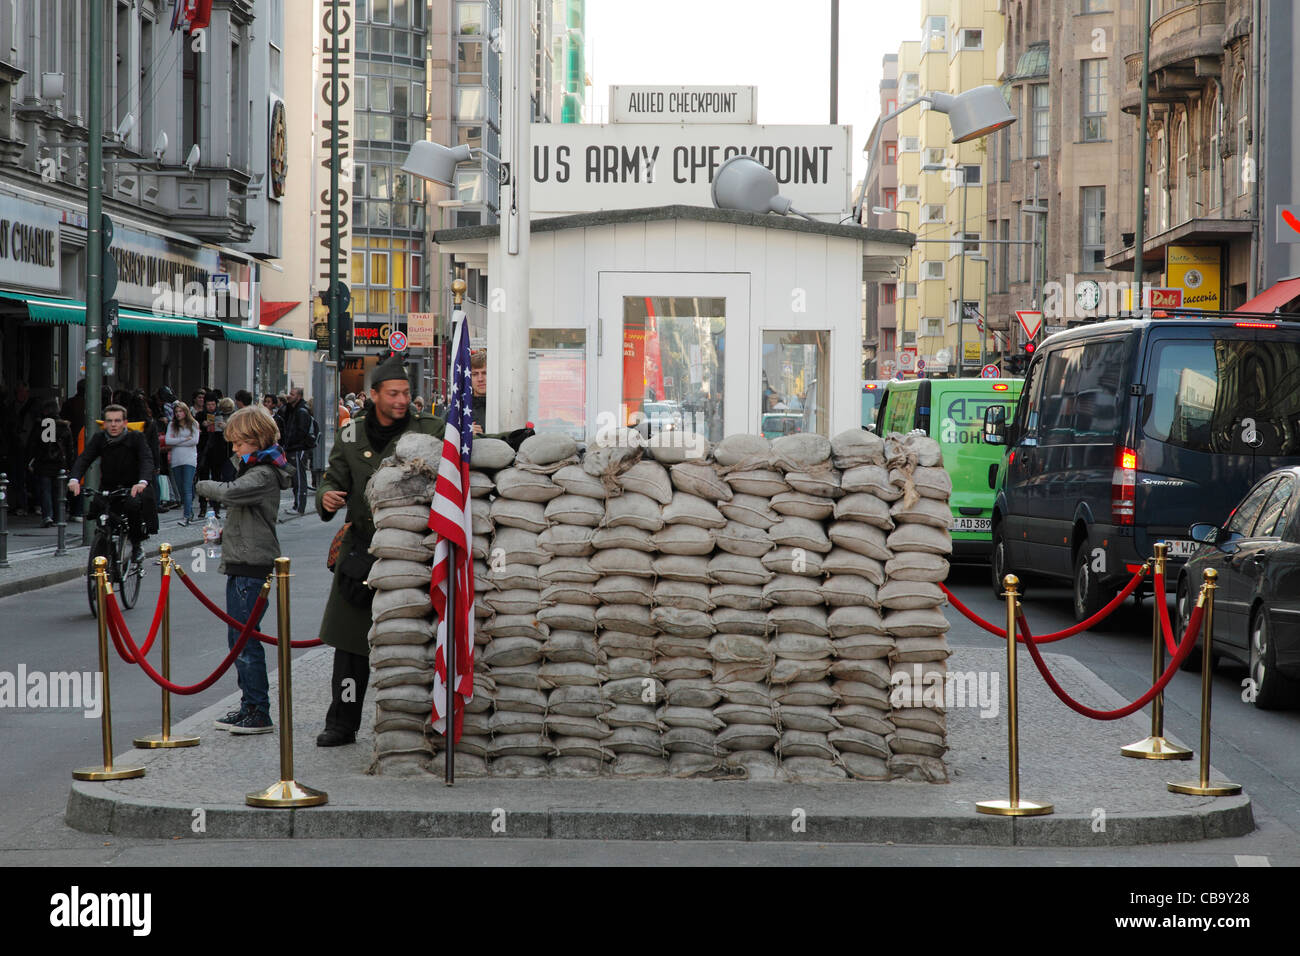 US Army checkpoint Charlie in Berlin, Germany - Stock Image